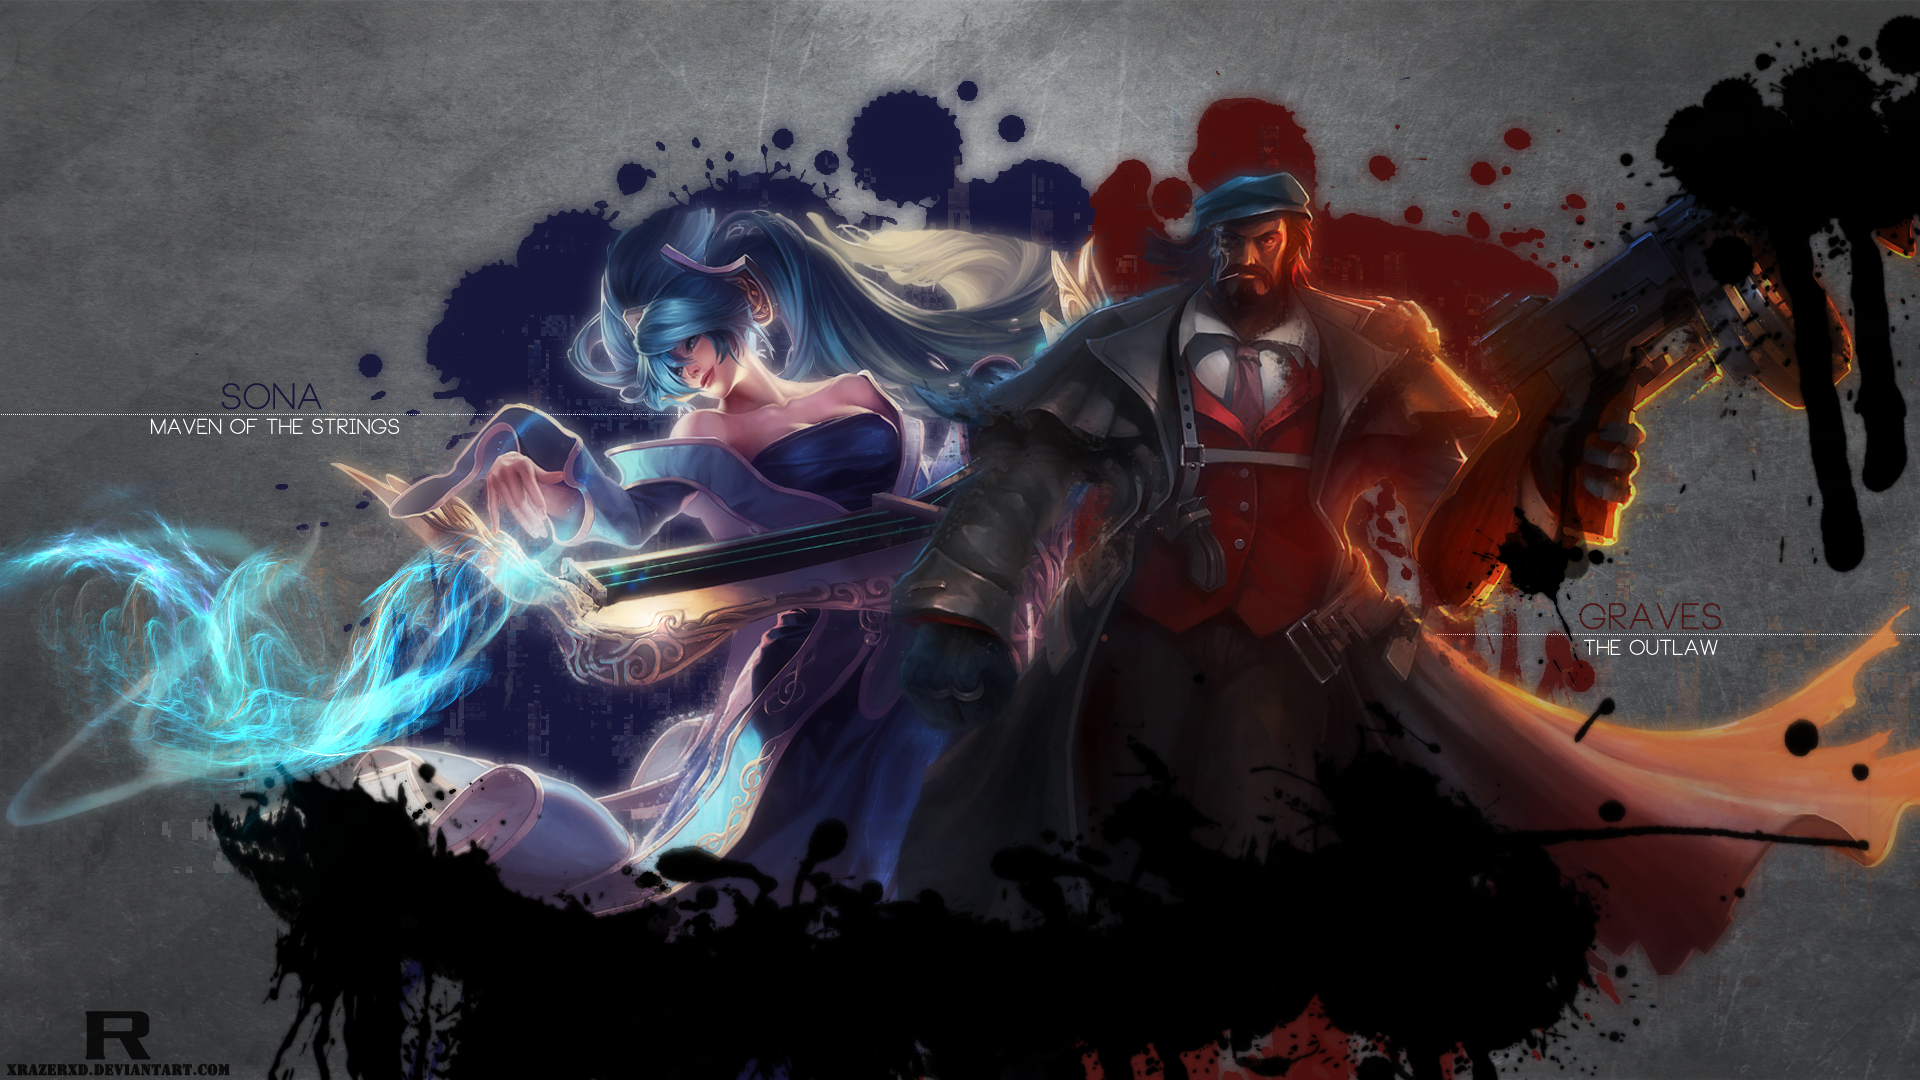 Sona & Mafia Graves wallpaper